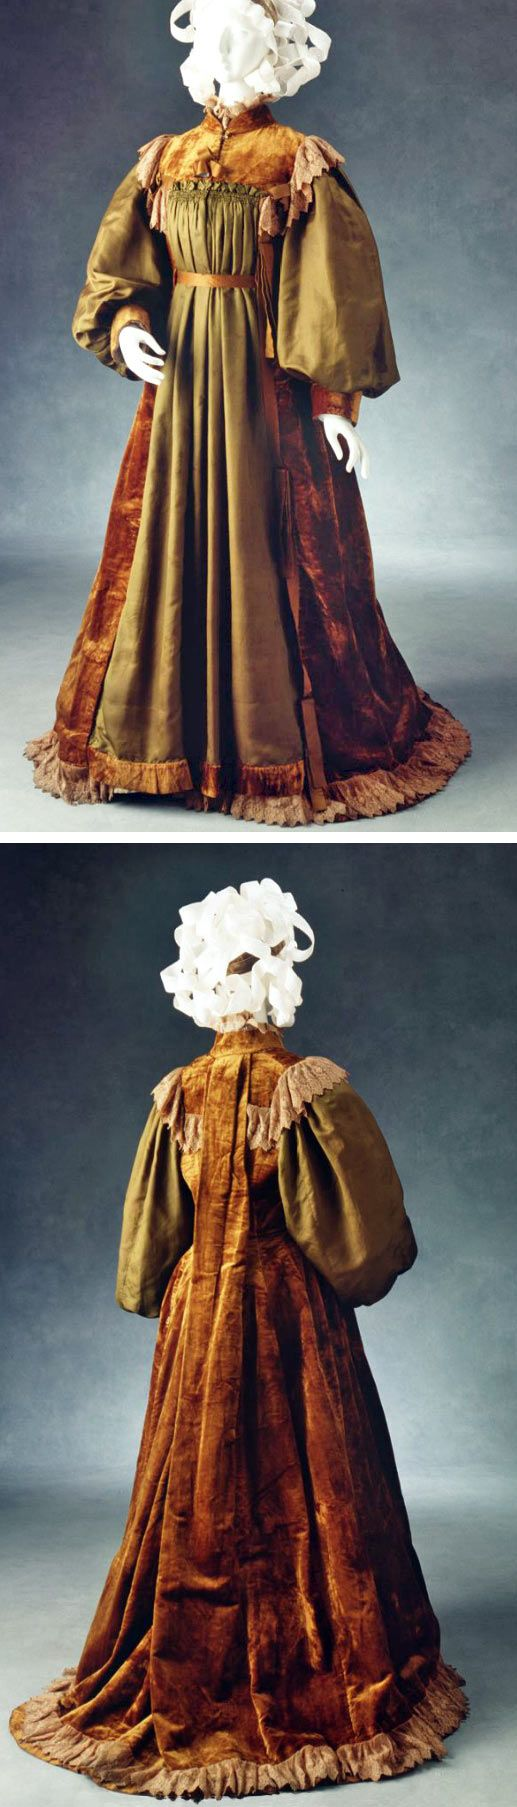 Morning dress, ca. 1860-64. Silk, velvet, and lace. In form of robe, calico-lined throughout, which fastens upper part of front with 6 covered buttons. High neck, small standup collar, square yoke at front, edged by lace. Front panel bottle green foulard silk, full inset sleeves of foulard ending in velvet cuff. Watteau pleat at back, beginning at neckline. Lace flounce at bottom, ribbon trim. Skirt slightly longer at back. Powerhouse Museum